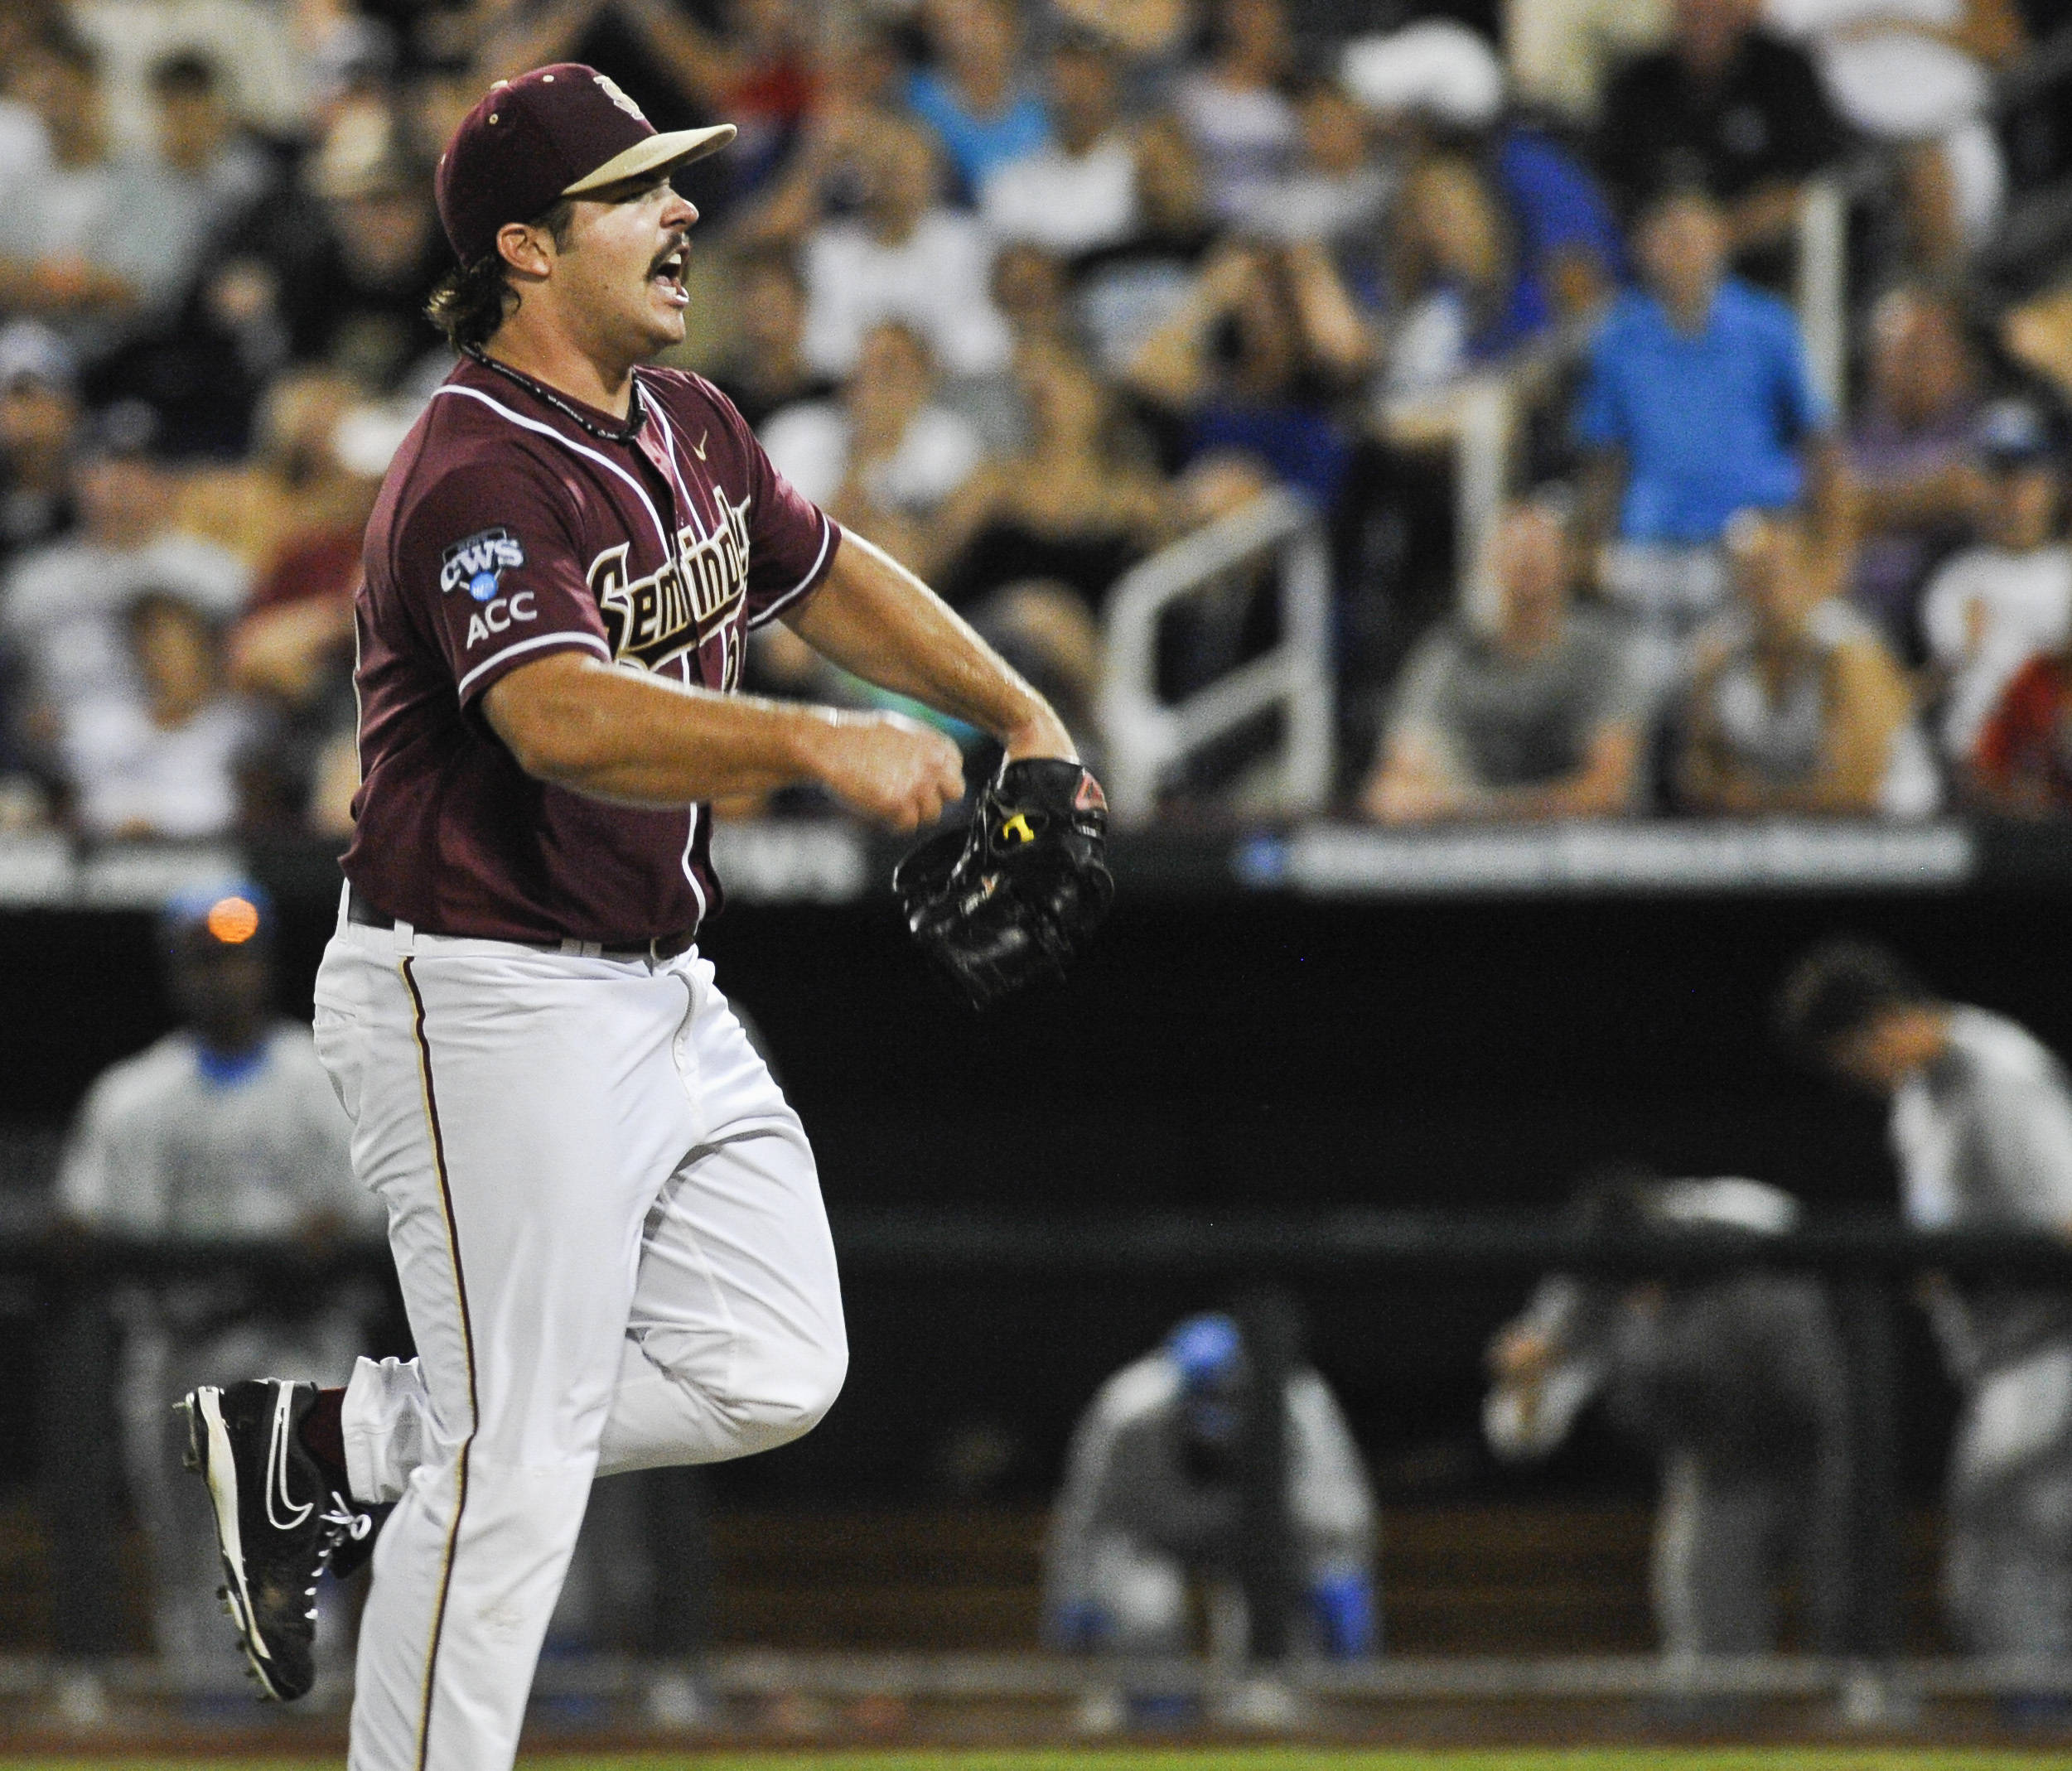 Florida State pitcher Scott Sitz celebrates after striking out UCLA's Pat Valaika and getting out of a bases-loaded situation, in the sixth inning. (AP Photo/Eric Francis)